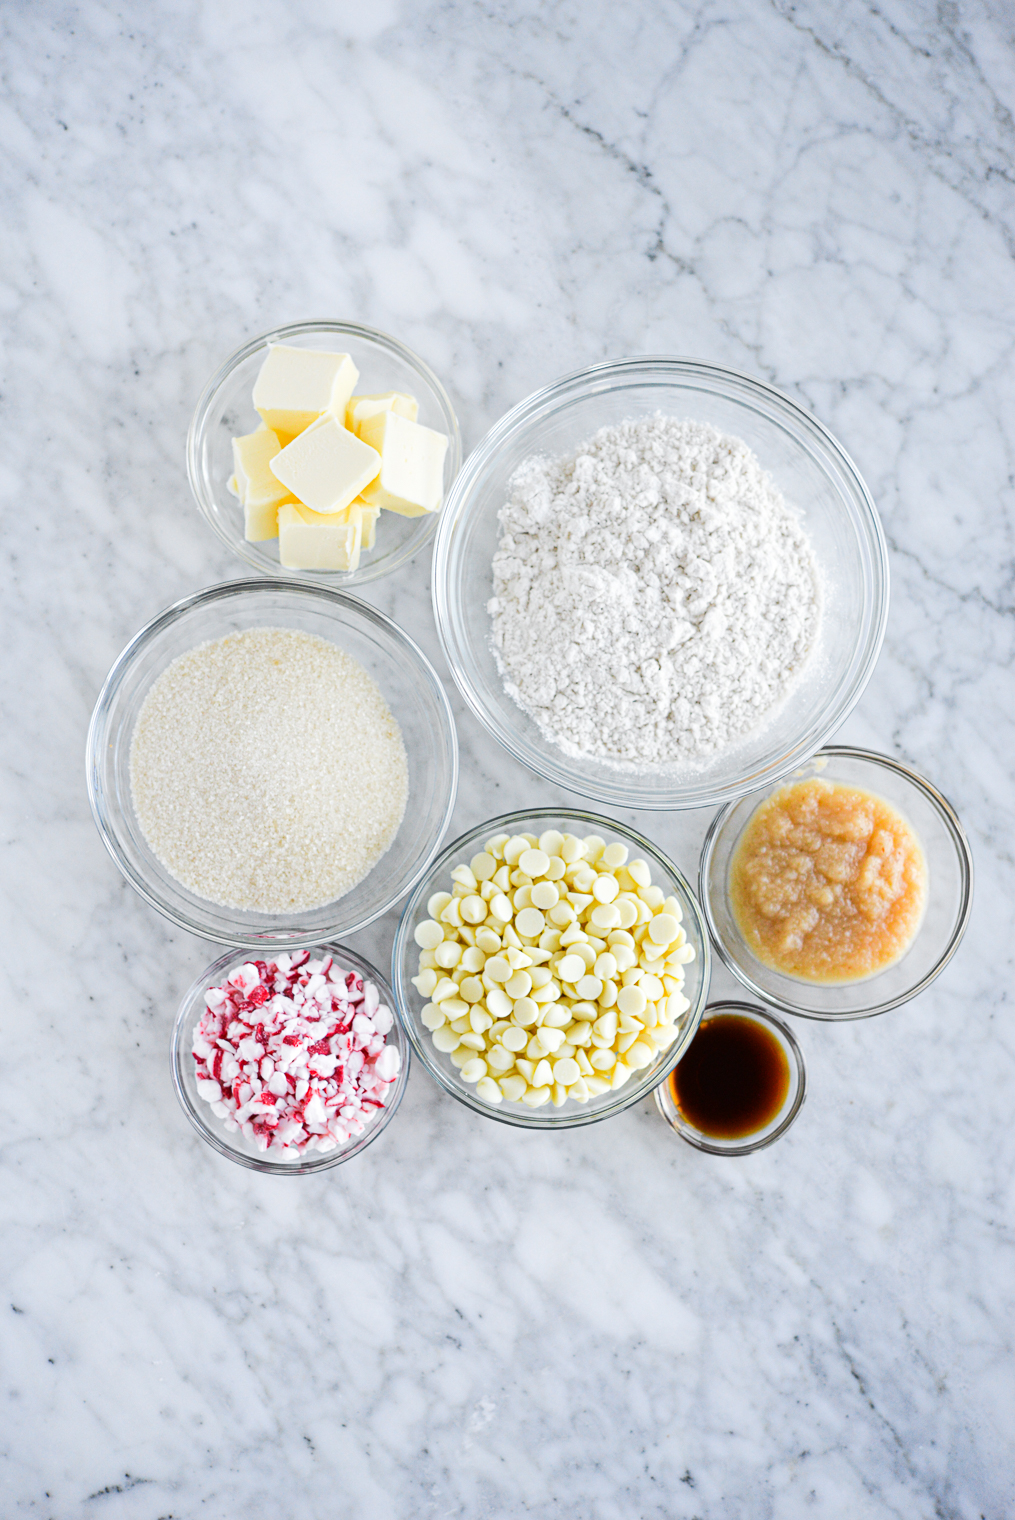 bowls of ingredients for white chocolate peppermint cookies on a marble surface